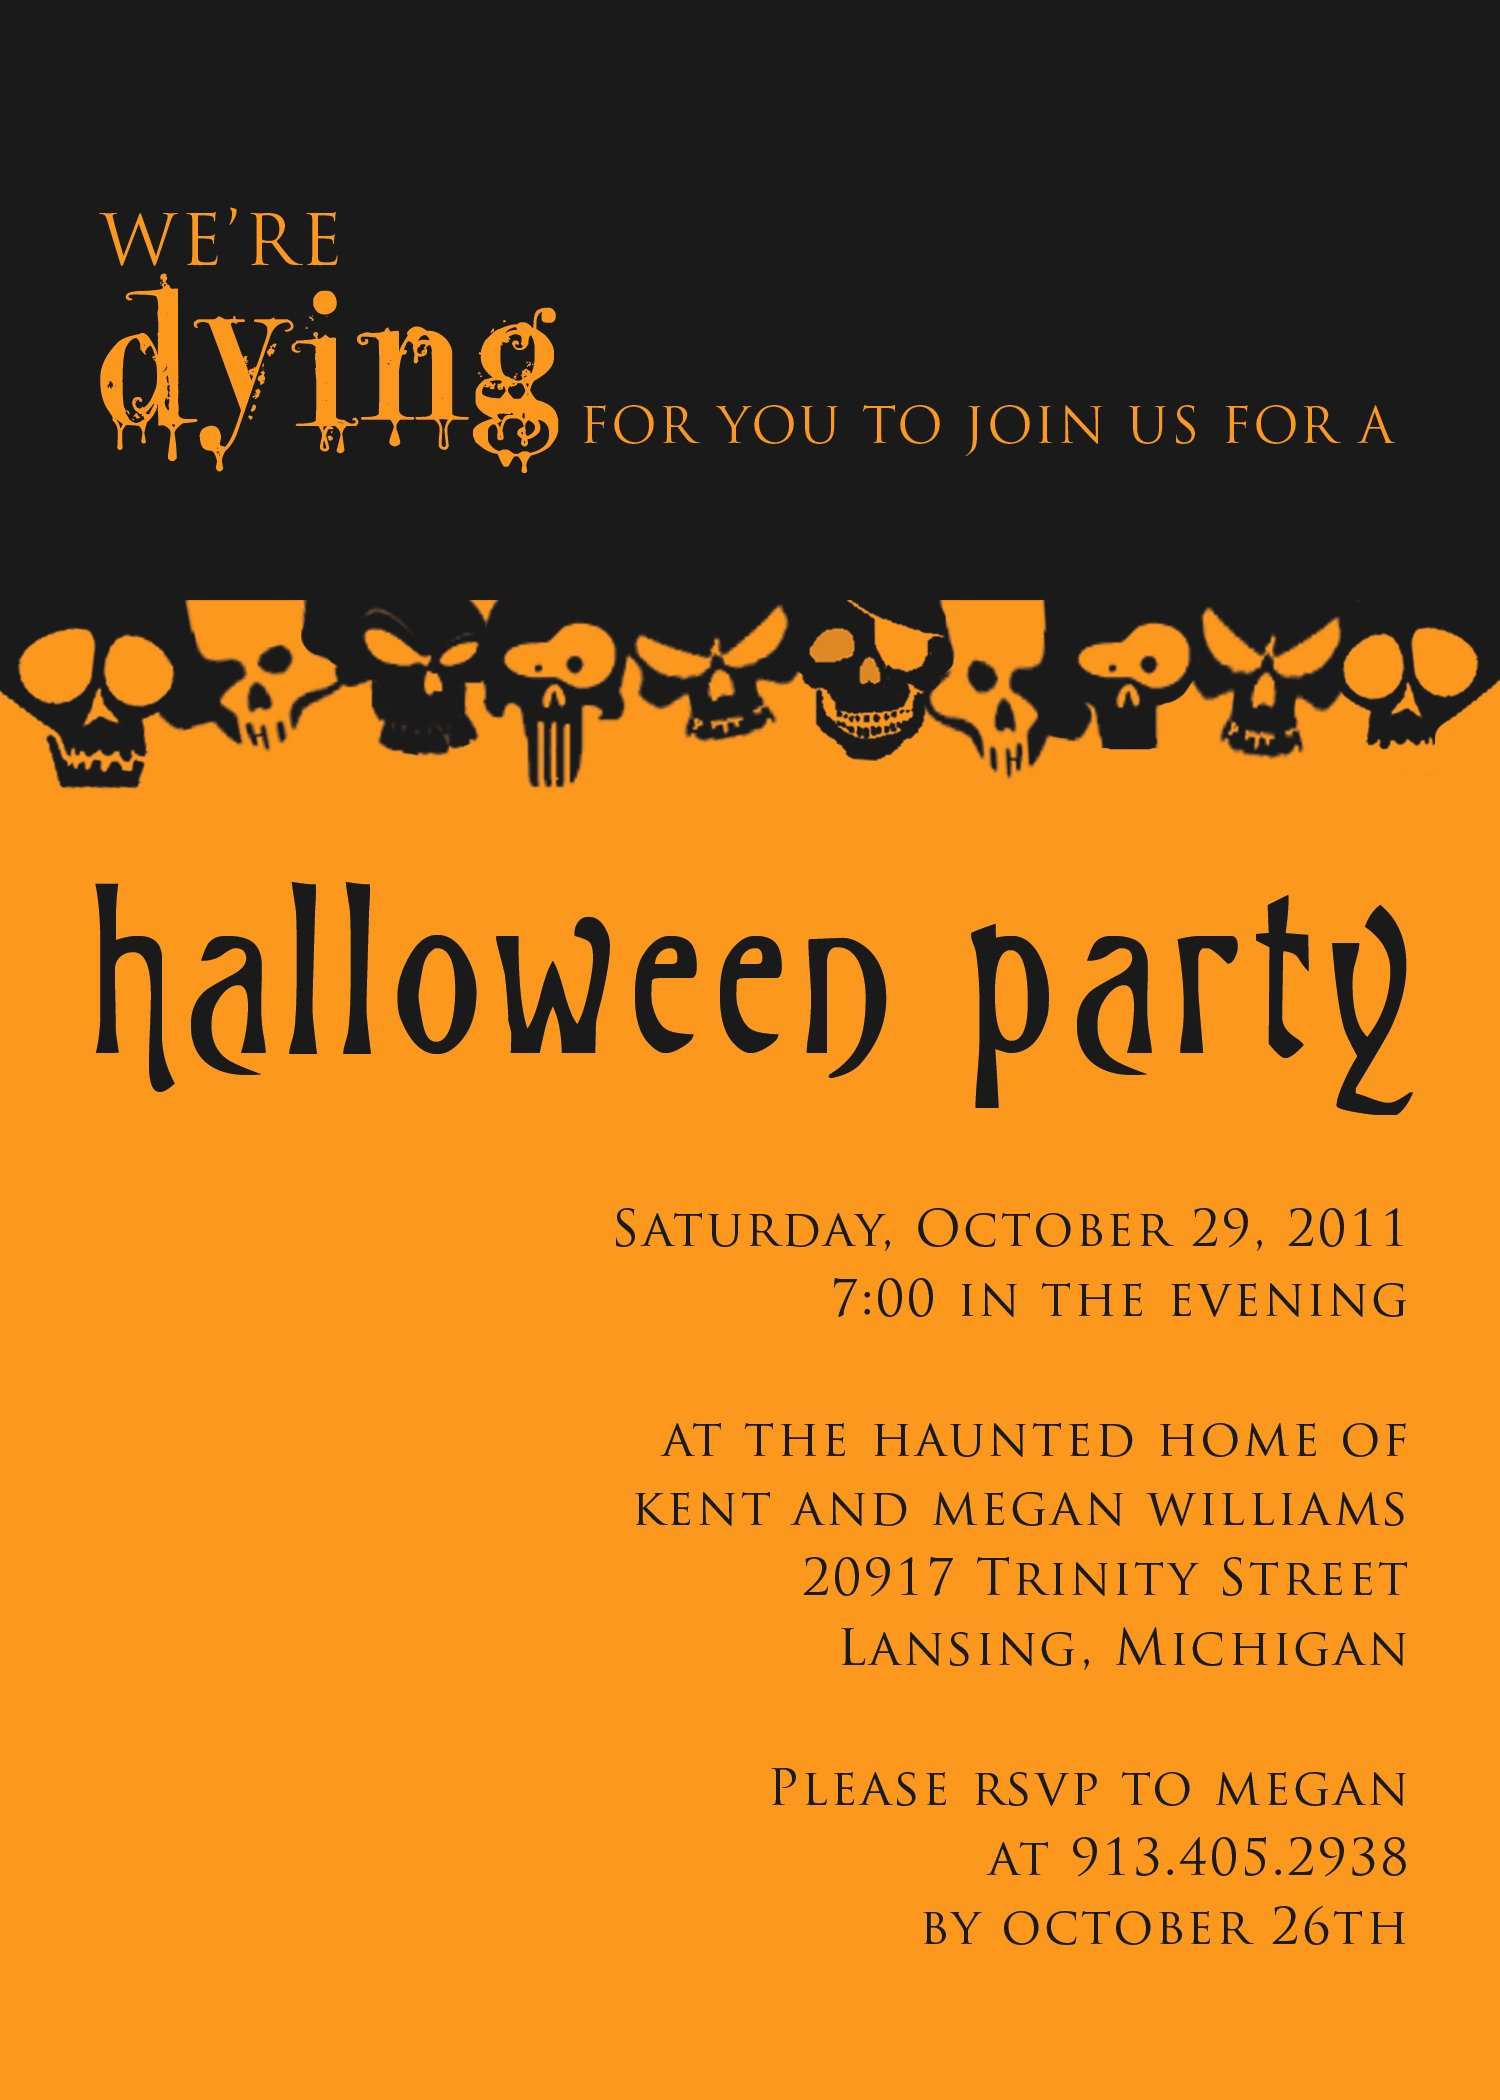 Halloween Party Invitations Template Elegant Halloween Party Invitation Templates Free – Festival